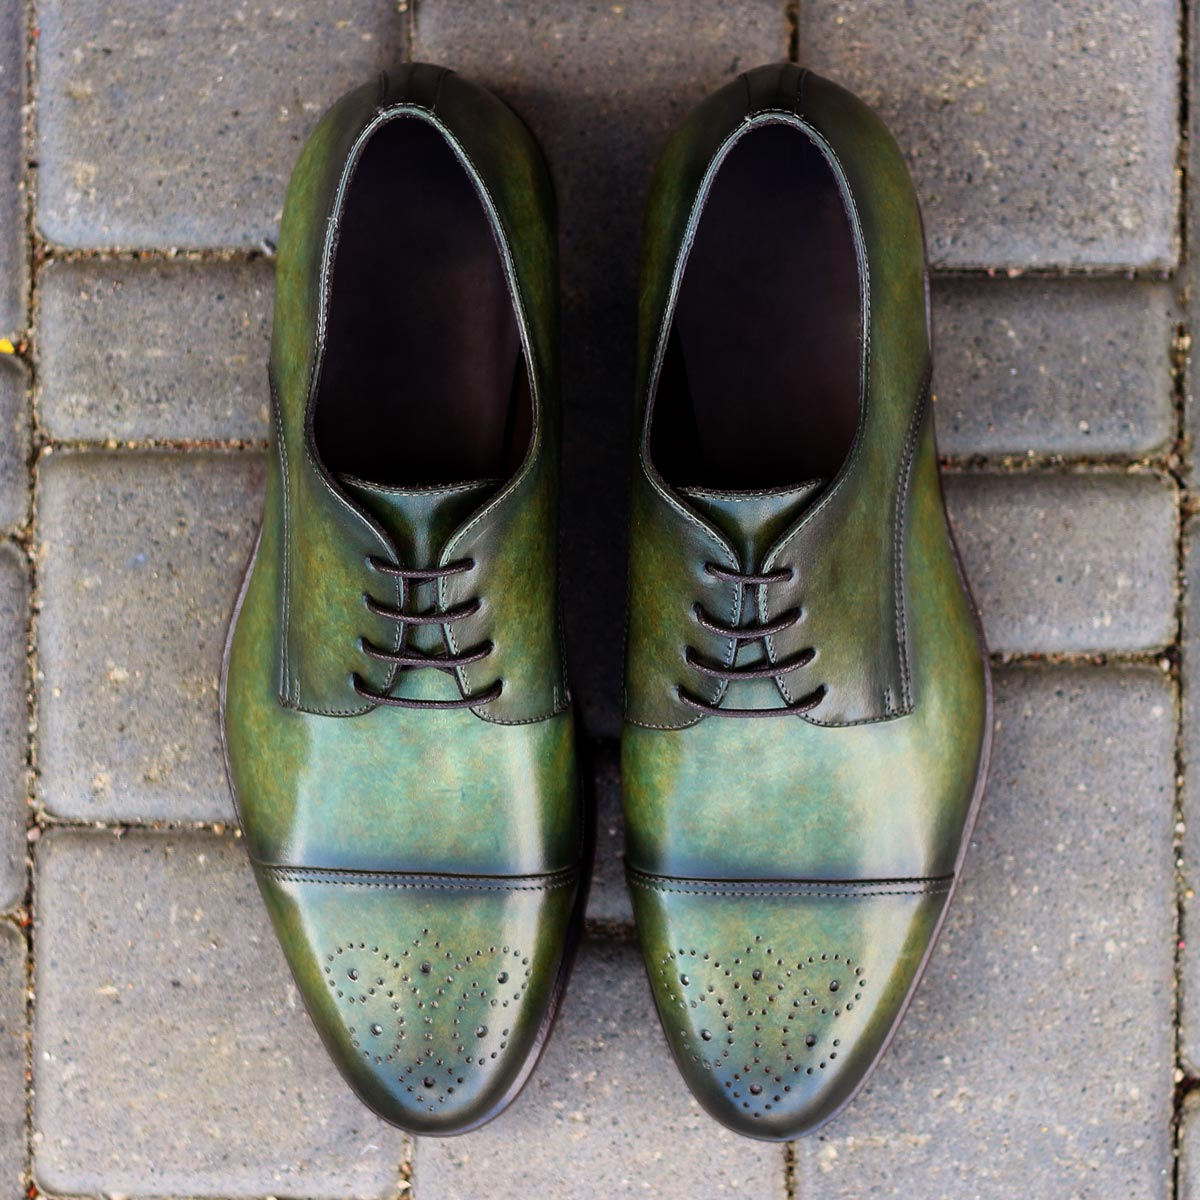 Derby  khaki crust patina : 330€